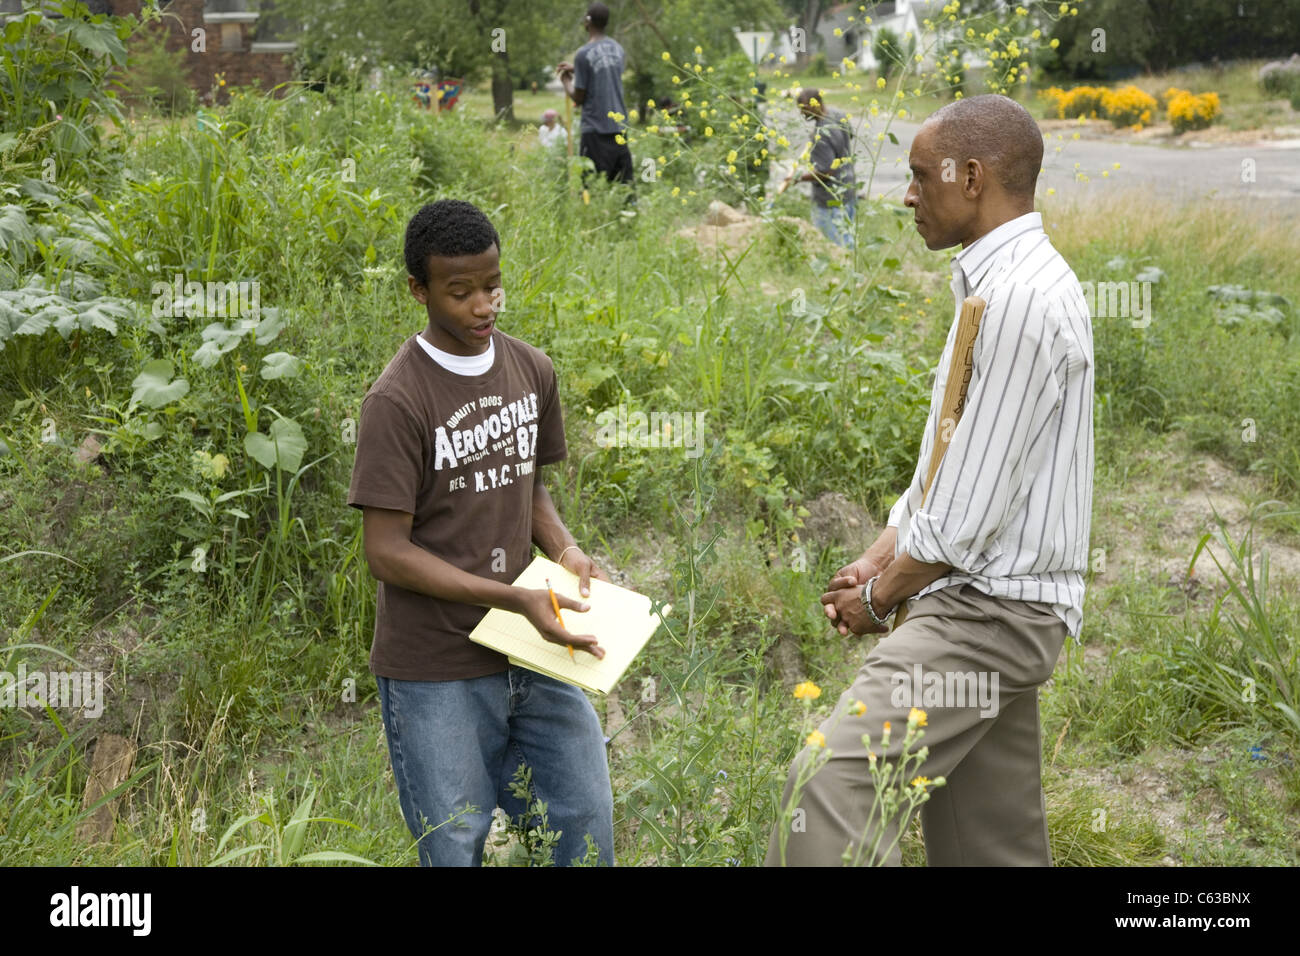 Junior High student in Detroit, MI. interviews Orland Bishop of the Shade Tree Foundation that works to motivate - Stock Image